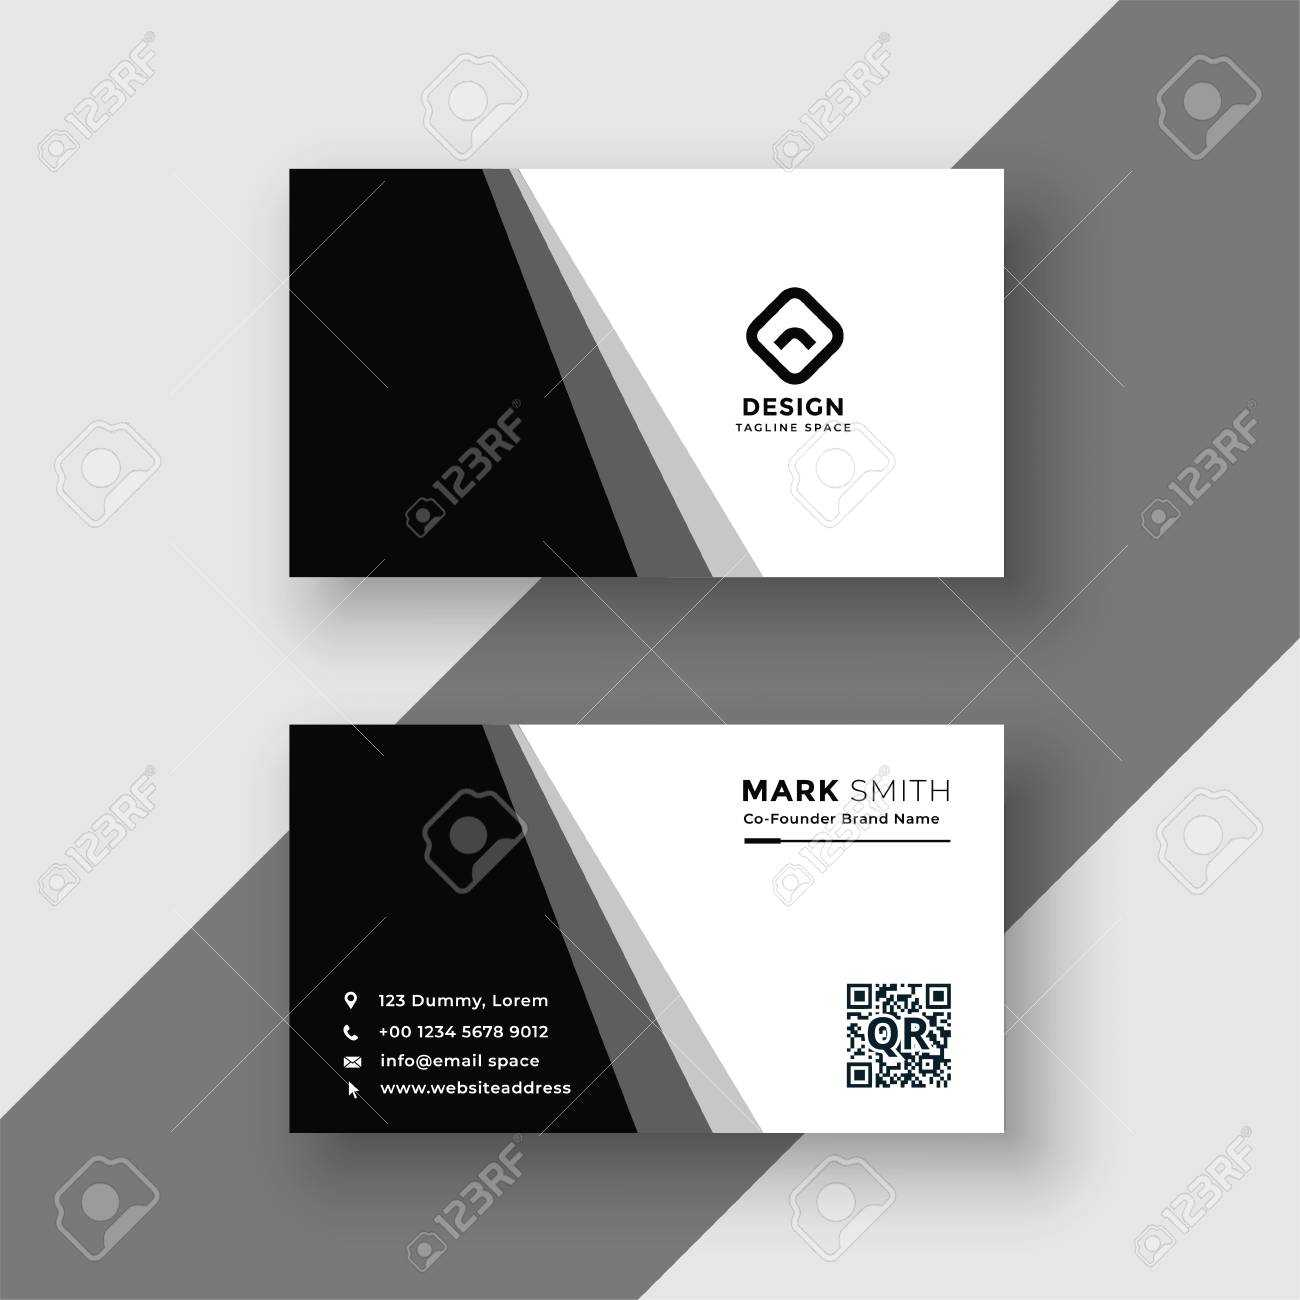 Elegant Black And White Business Card Template Throughout Black And White Business Cards Templates Free